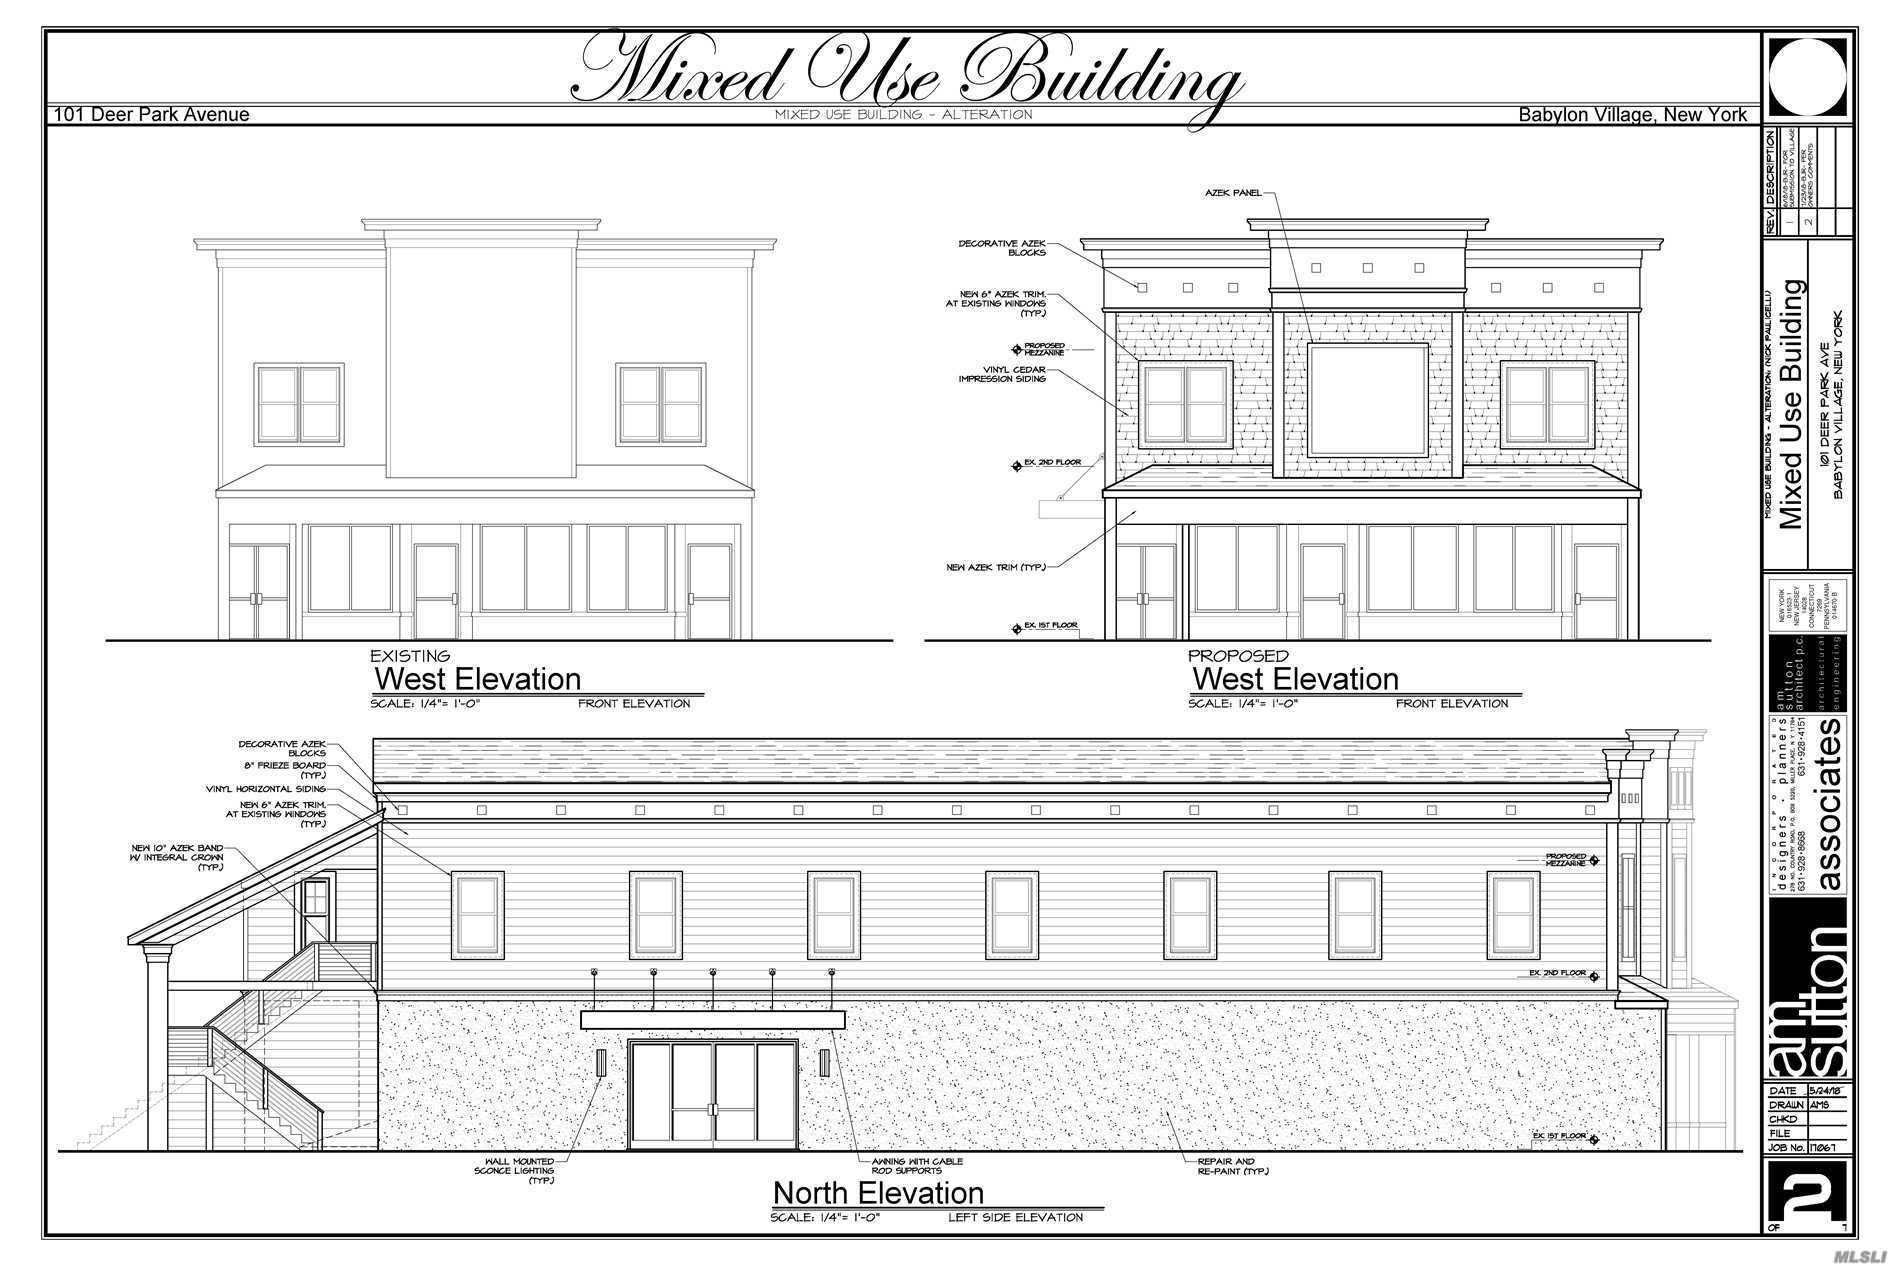 Prime Retail Space In The Heart Of Babylon Village - Full Exterior Renovations are starting soon - 21 Space Parking Lot & Full Exterior Security System - Rear Unit Avail - 1428 Sq ft - Unit will have entrance facing walk way of the Brixton and entrance from back parking lot and be offered at $30 sq ft.($3570)